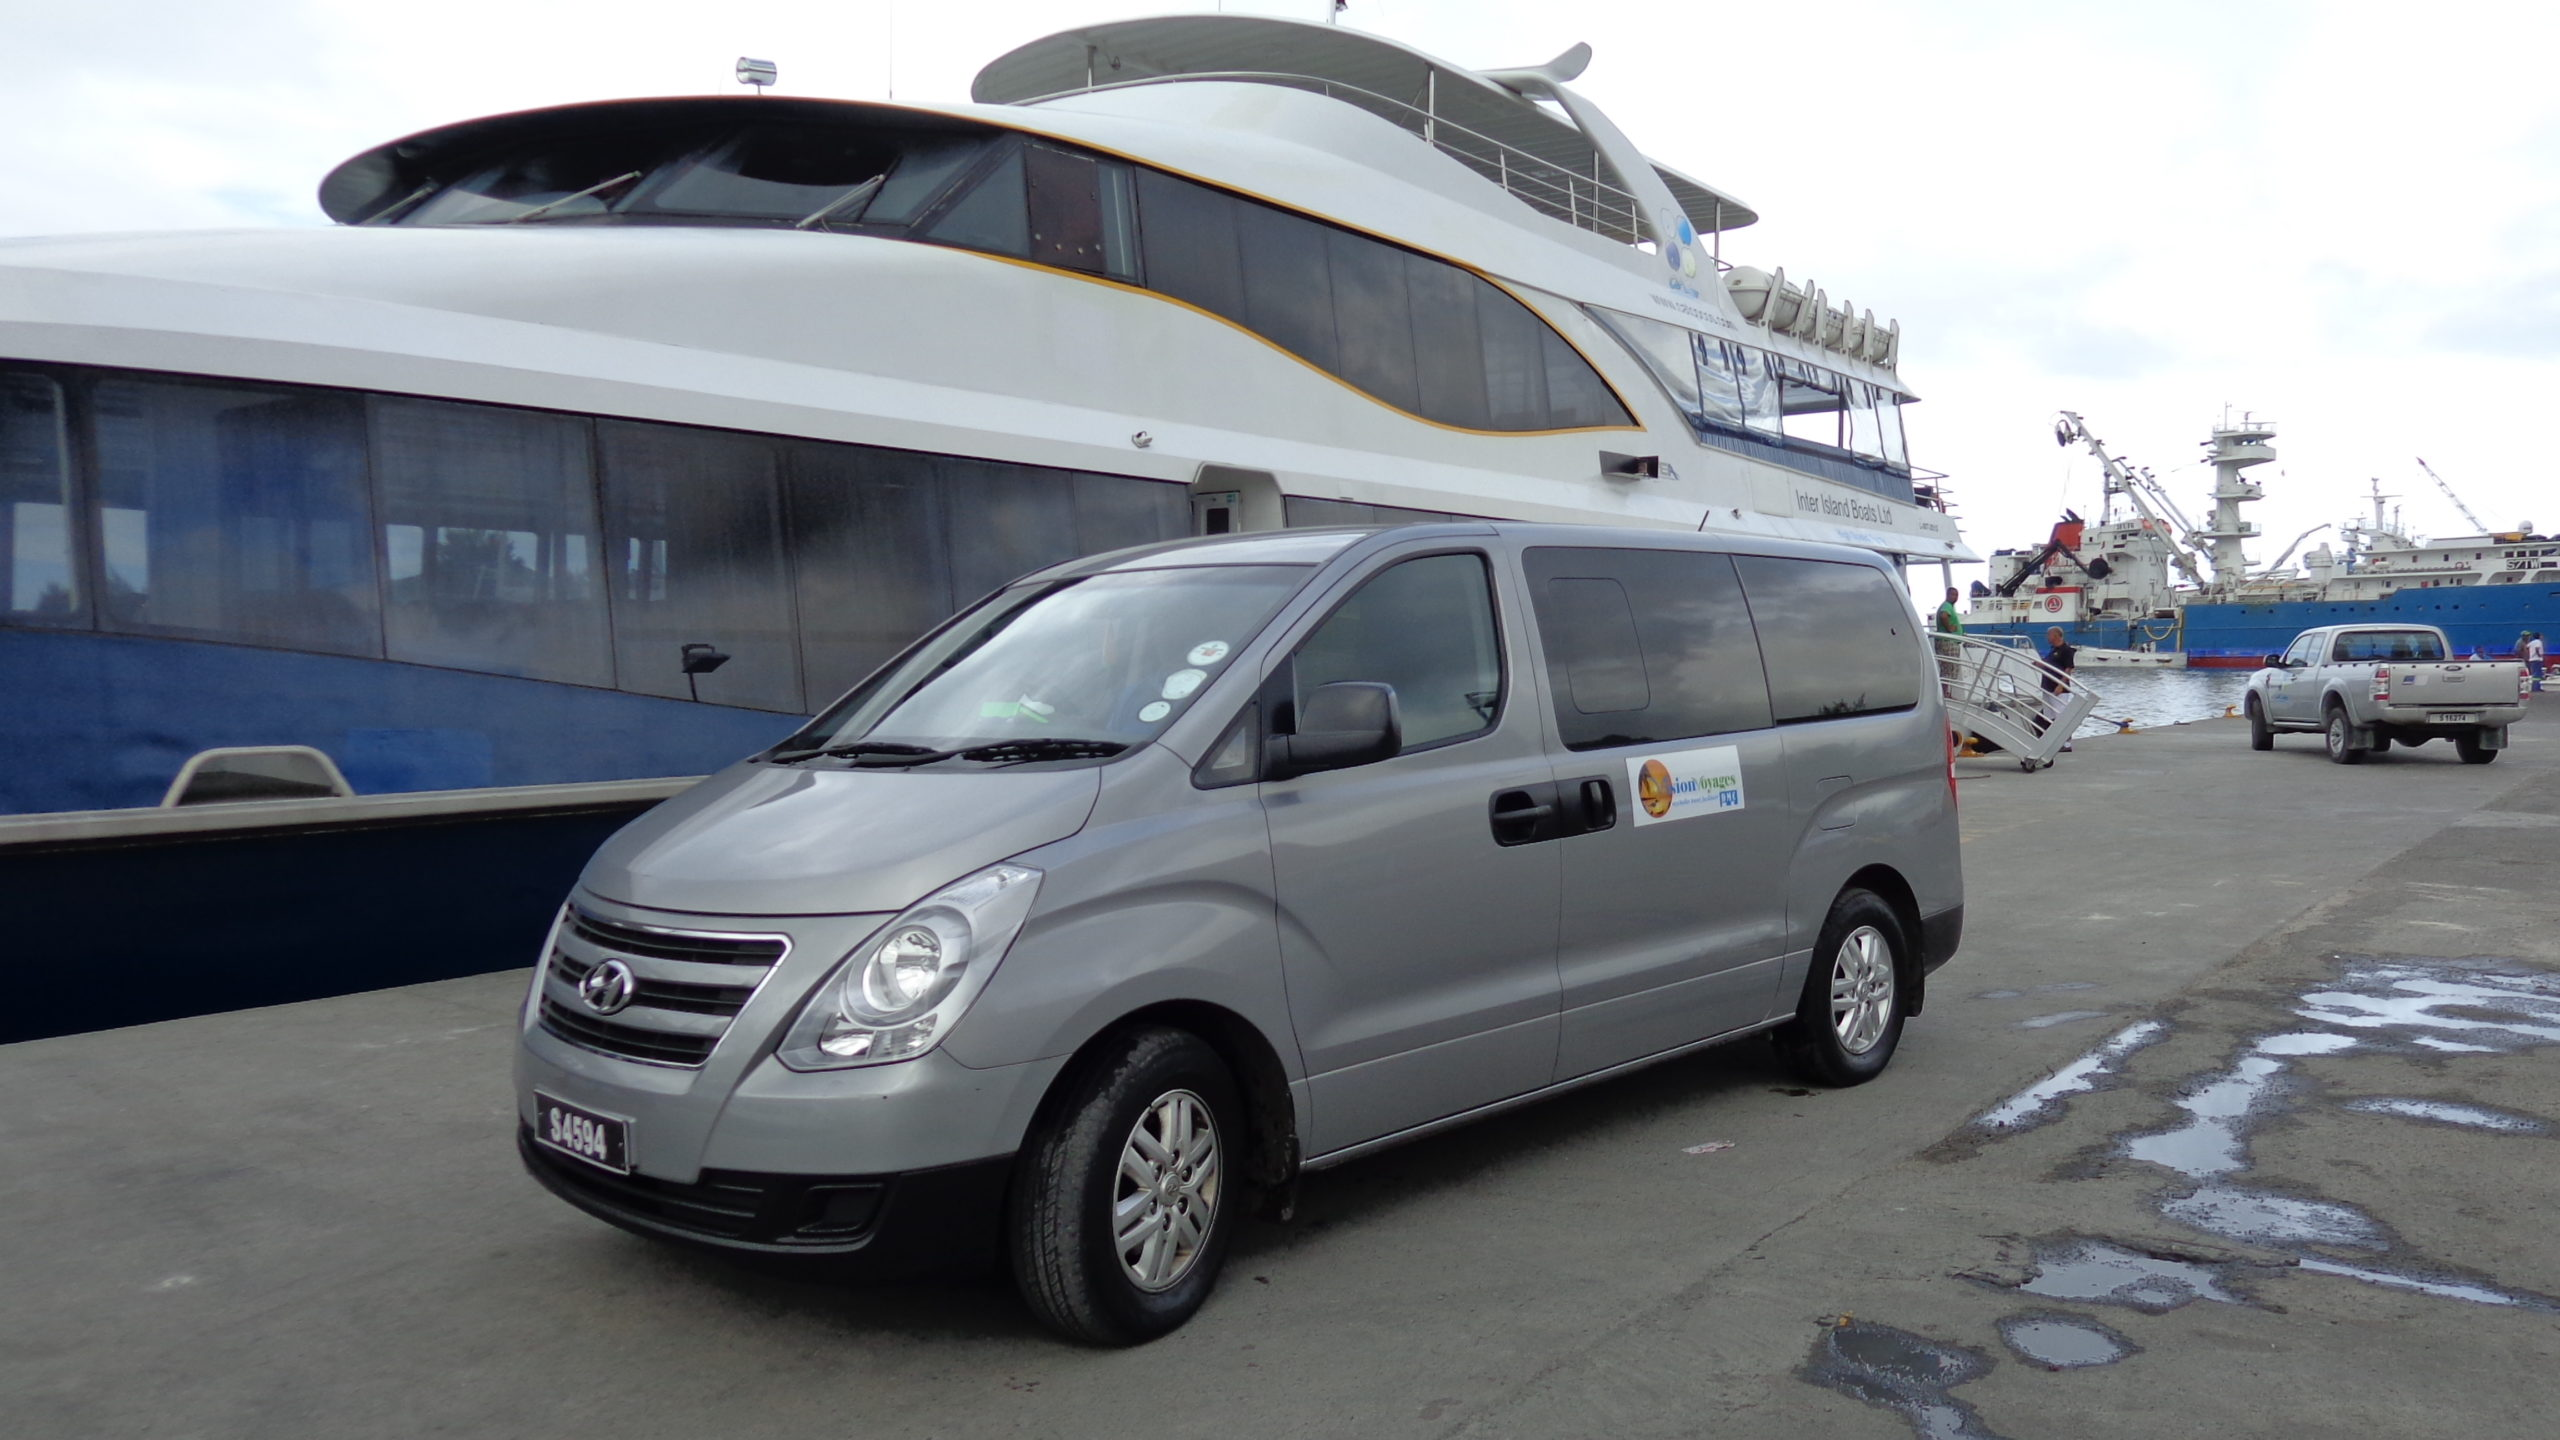 Luxury Seychelles Airport Transfer vehicle.